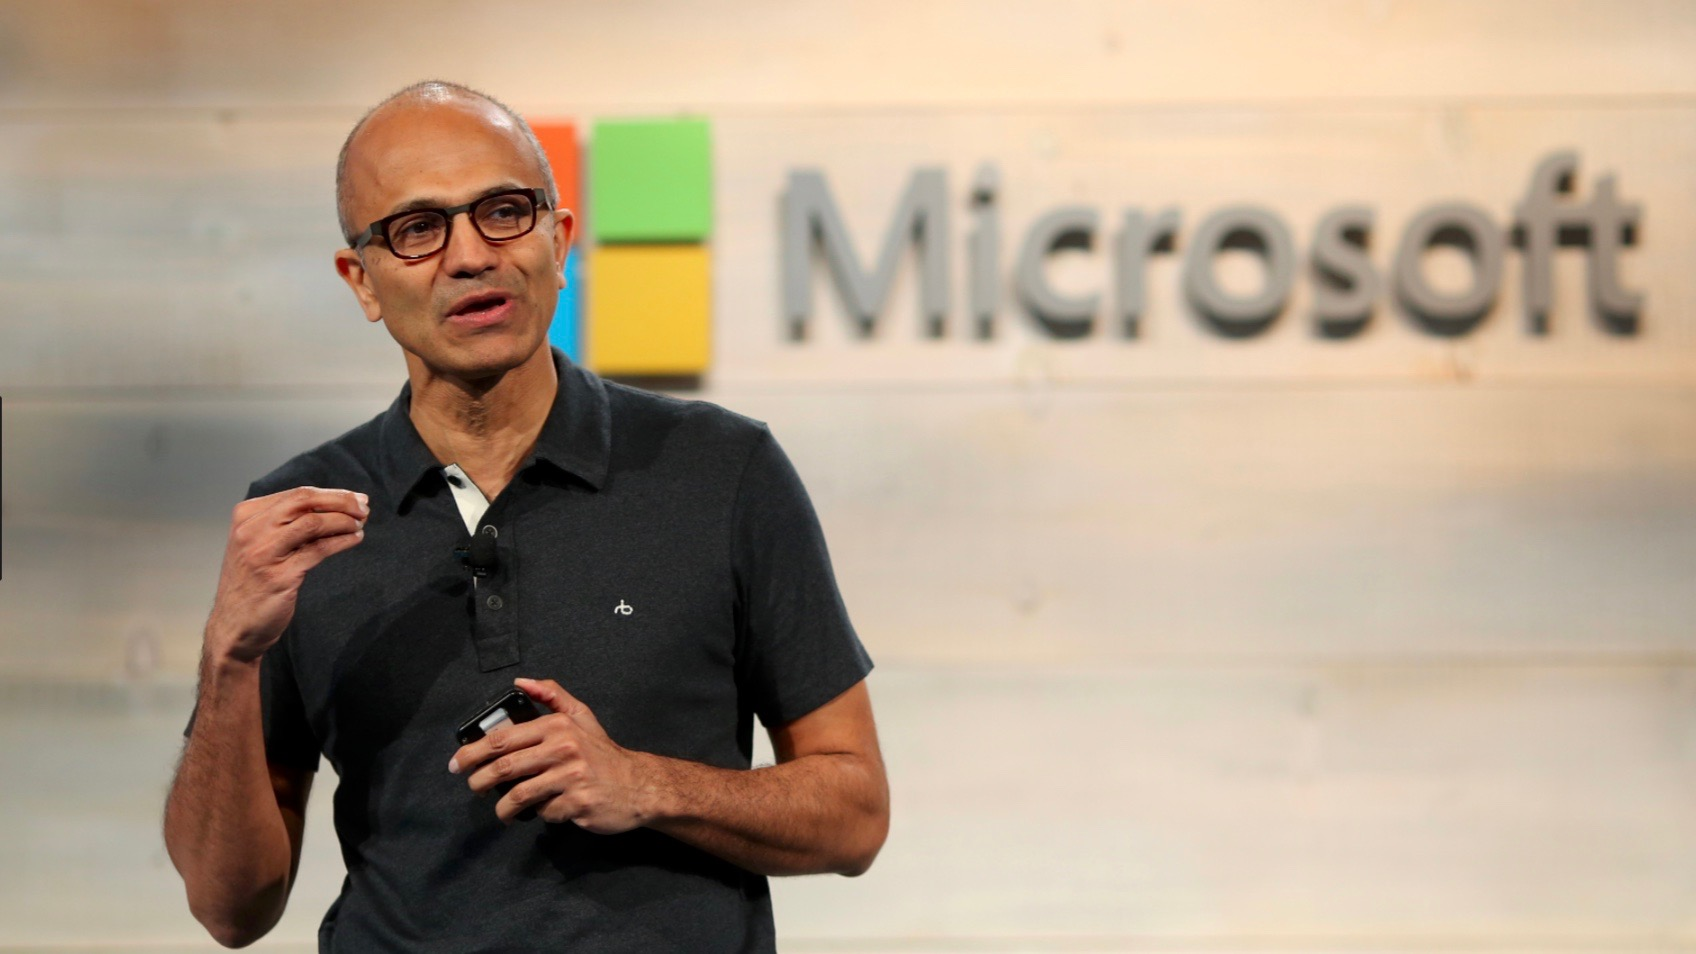 Microsoft shakes up leadership structure, Windows chief exits company